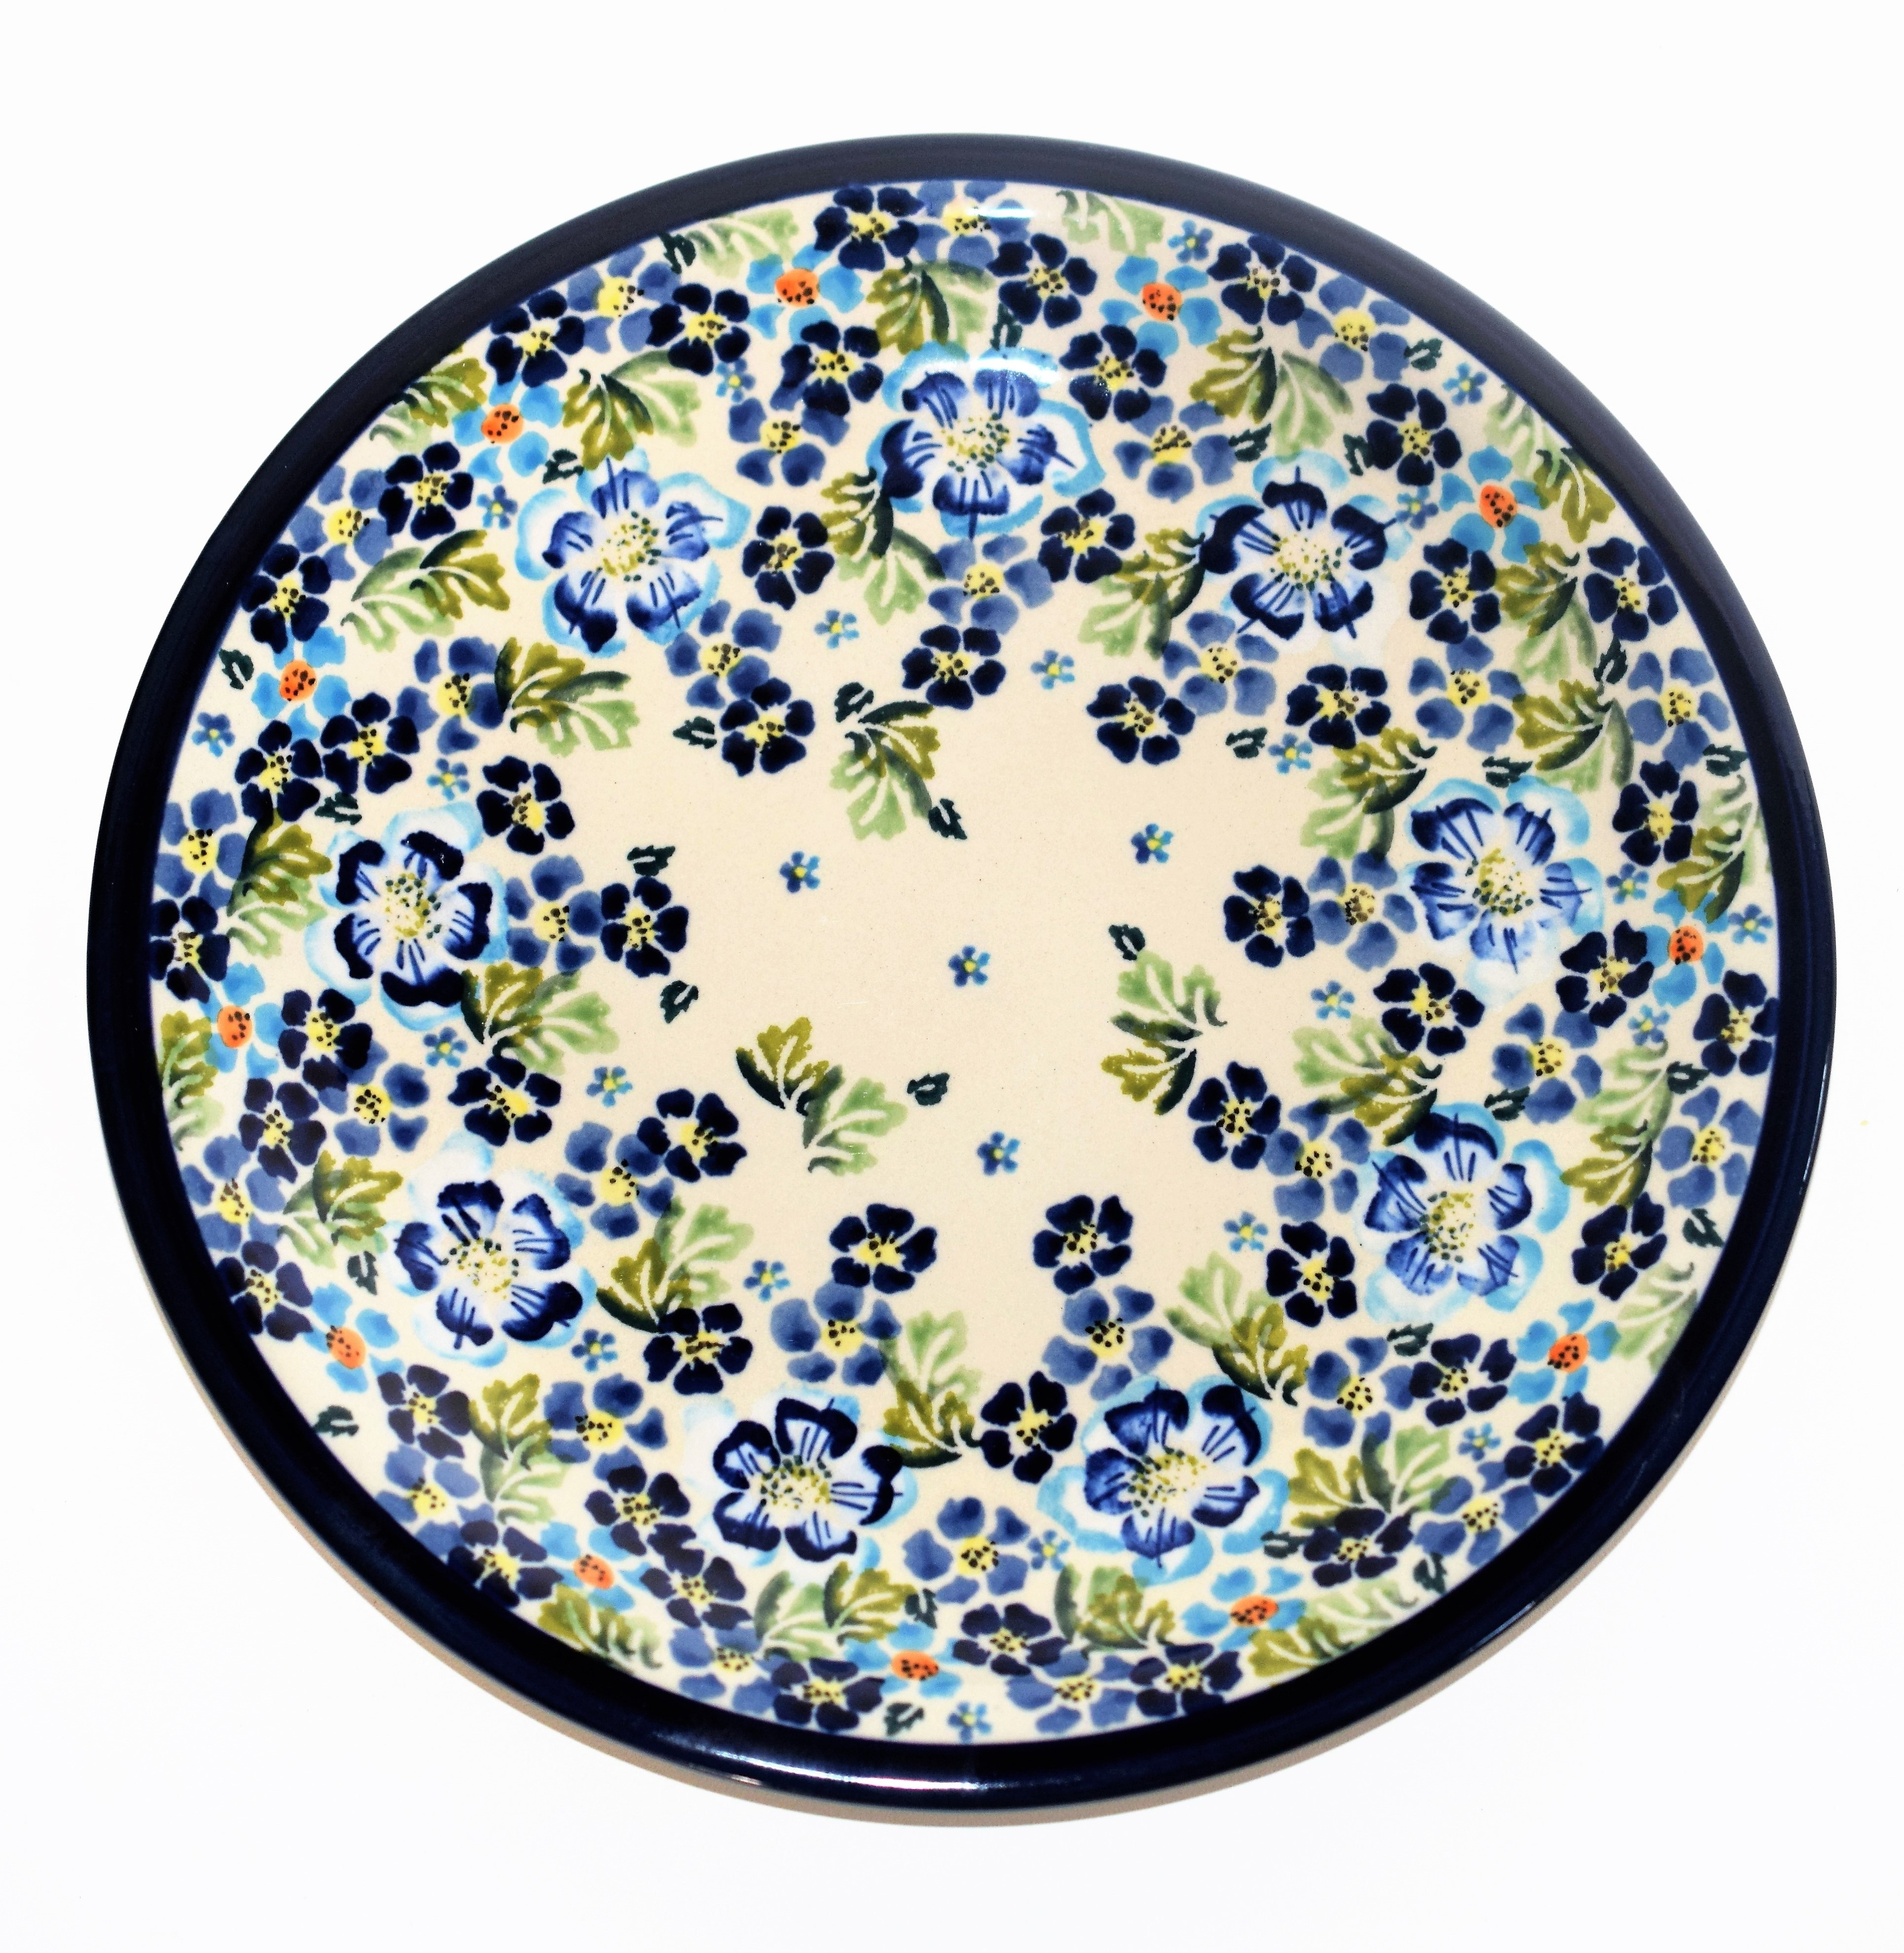 True Blues Dinner Plate from Pottery Avenue